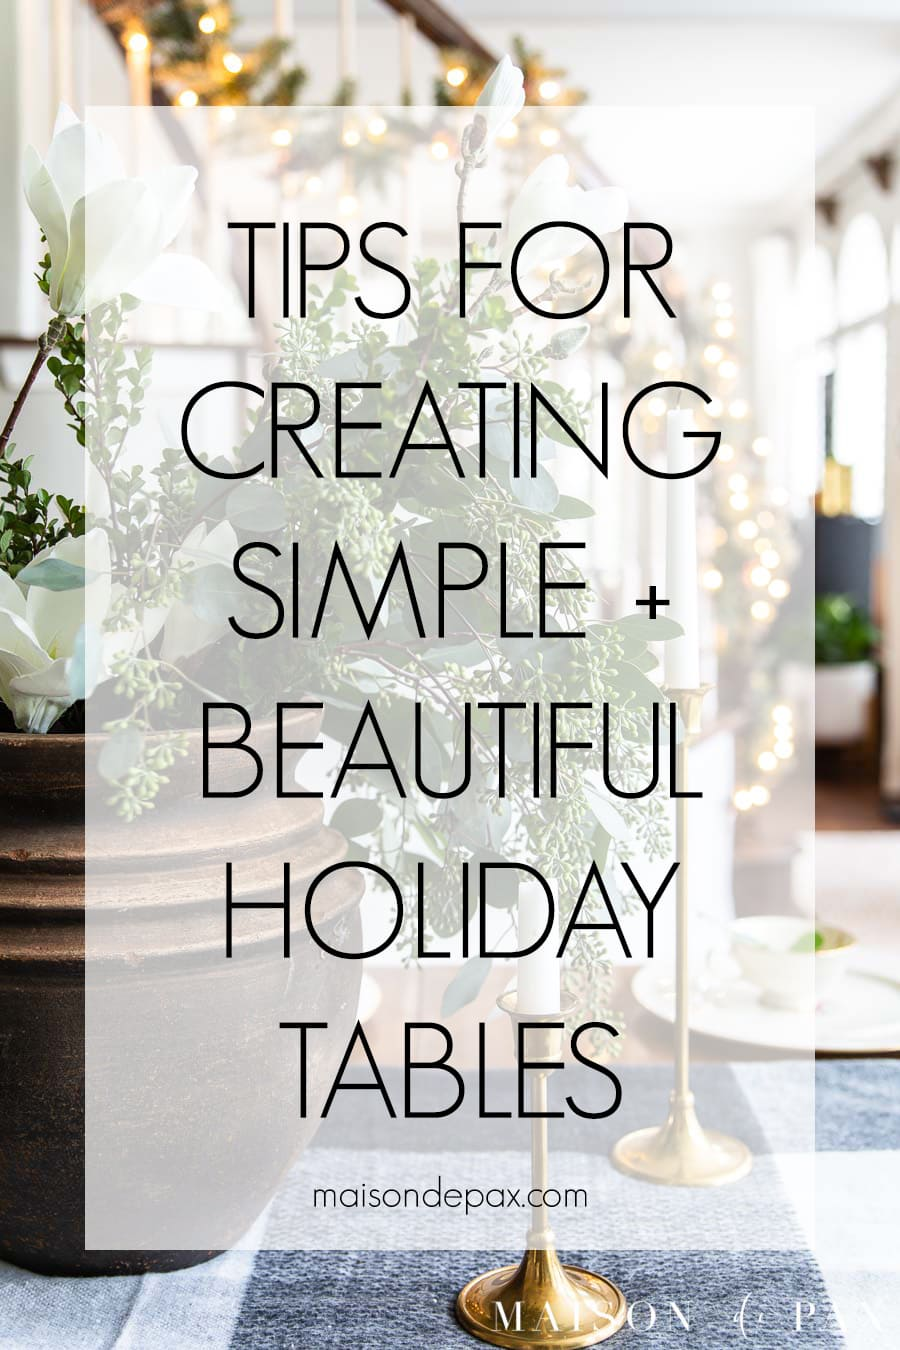 beautiful holiday table with overlay: tips for creating simple and beautiful holiday tables | Maison de Pax